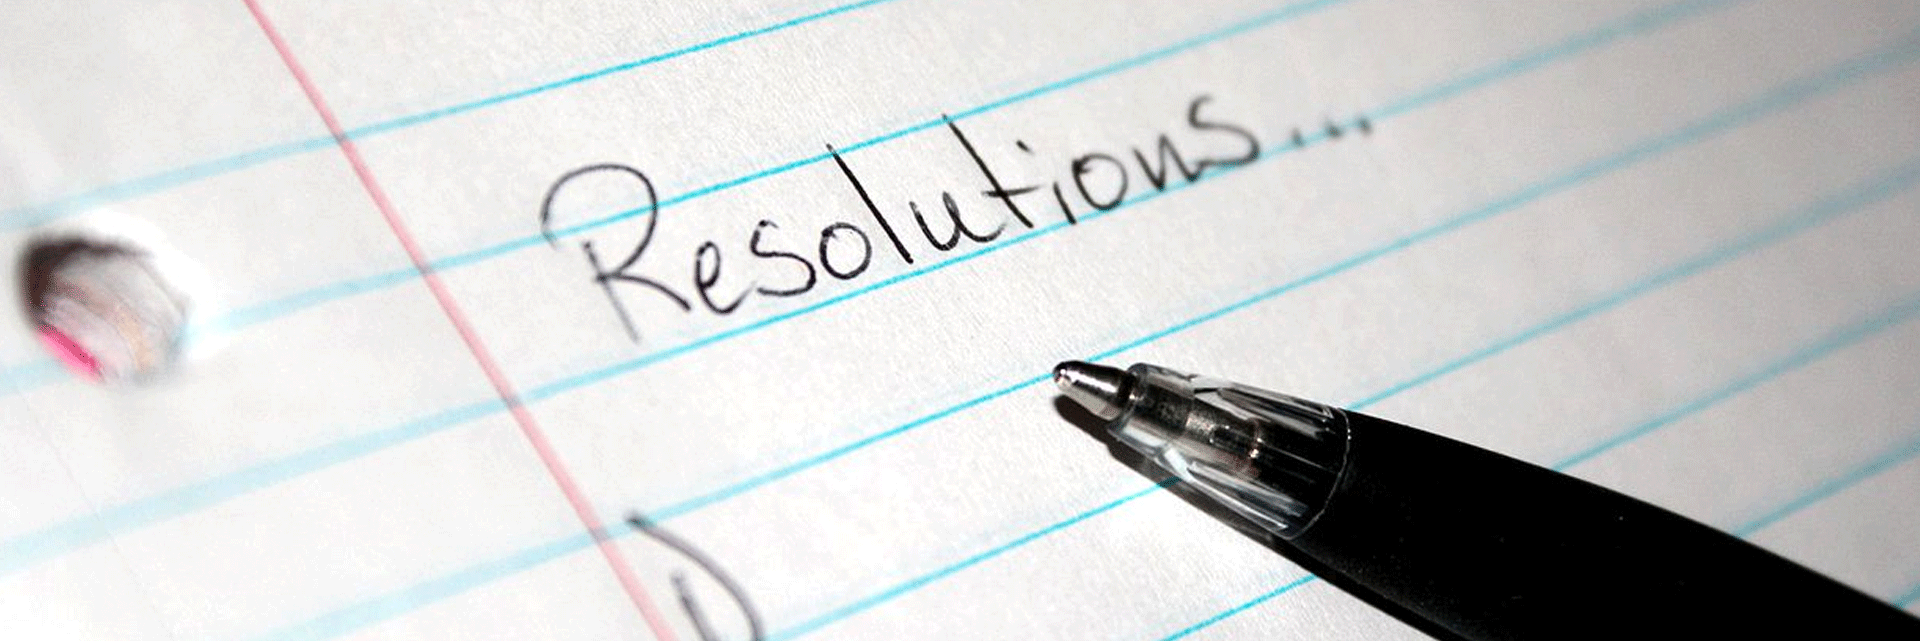 How to Keep Your New Year Resolutions